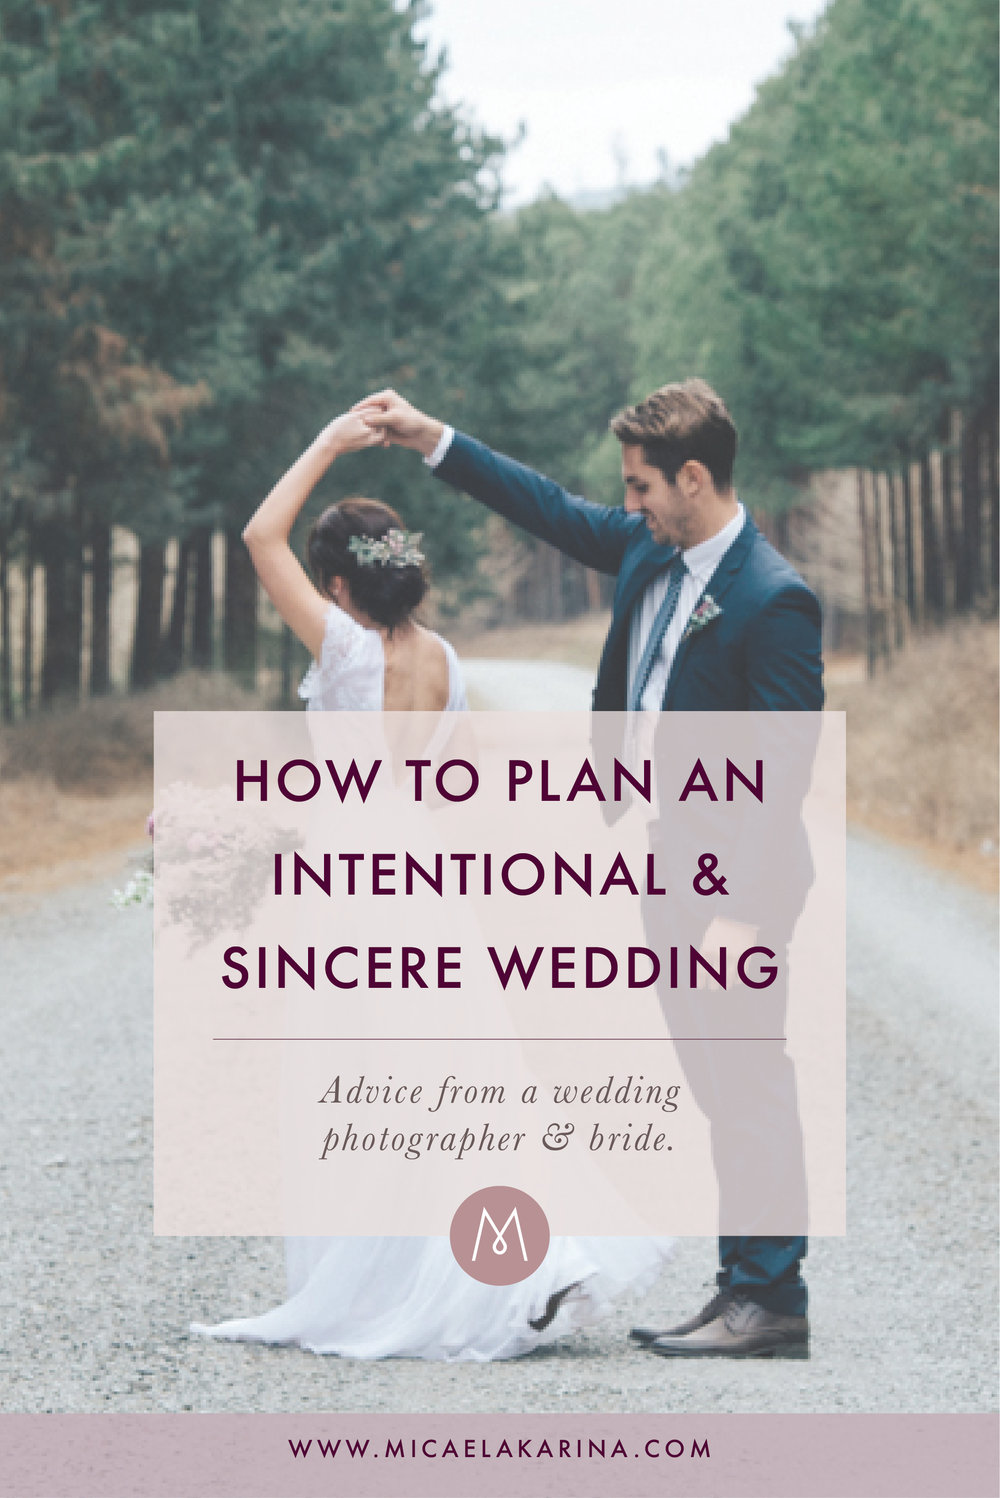 Micaela Karina Photography How to Plan Intentional Sincere Wedding.jpg